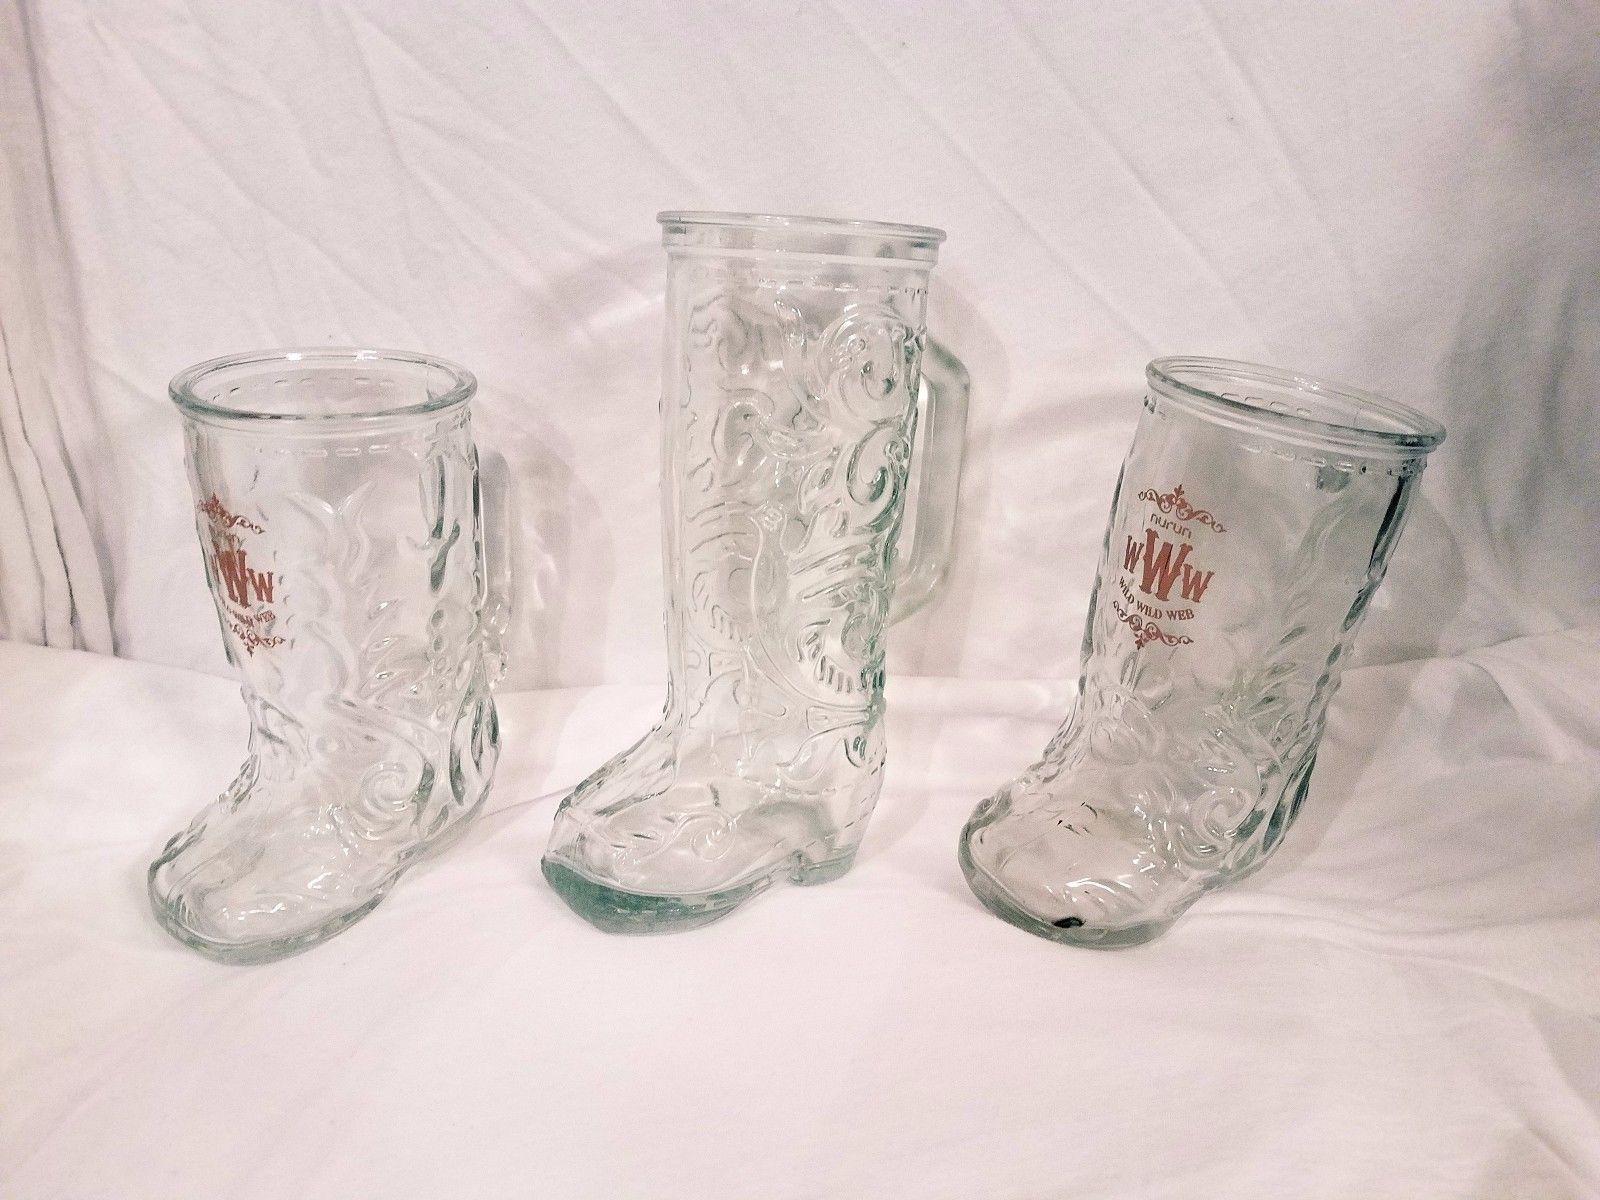 Western cowboy boot glass beer mugs coffee mugs pinterest western cowboy boot glass beer mugs floridaeventfo Images